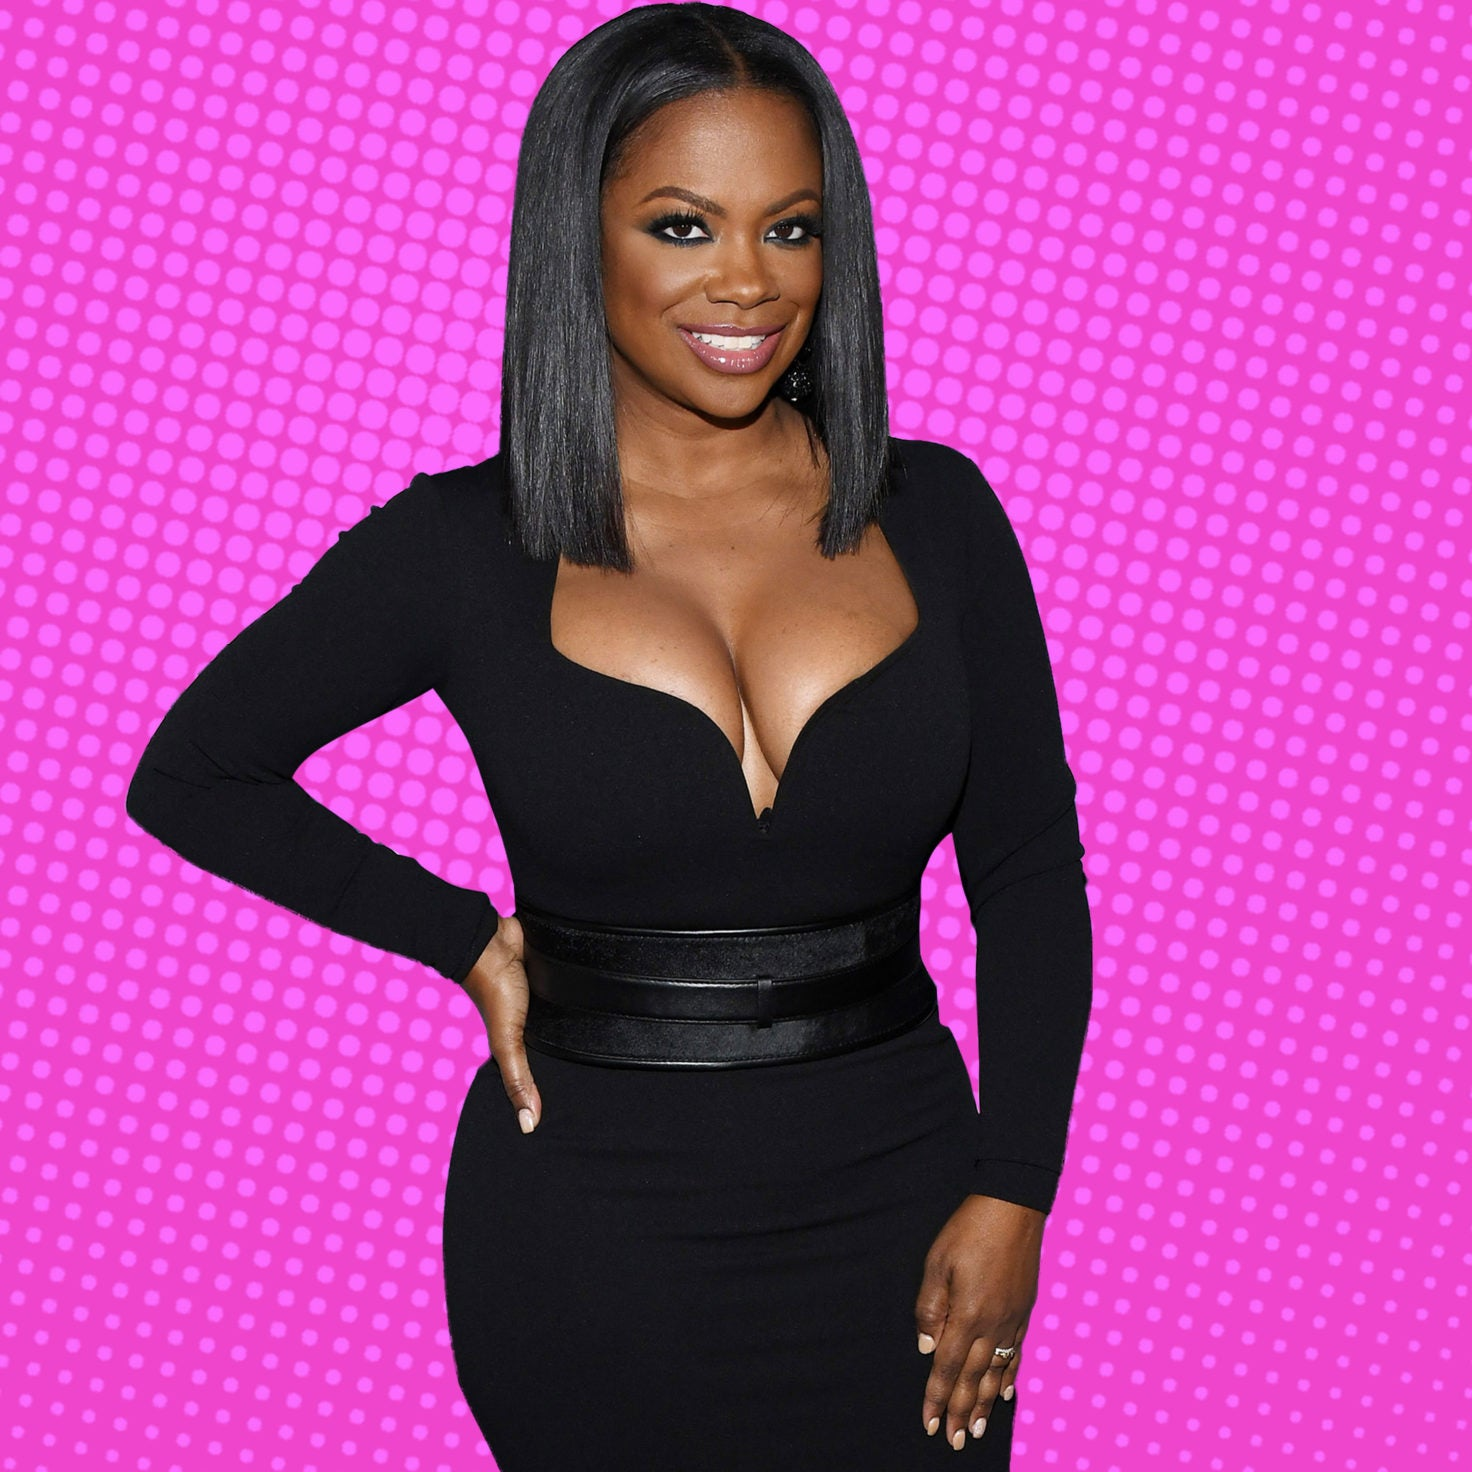 Kandi Burruss Hangs Out With Her BFF And Fans Adore Them